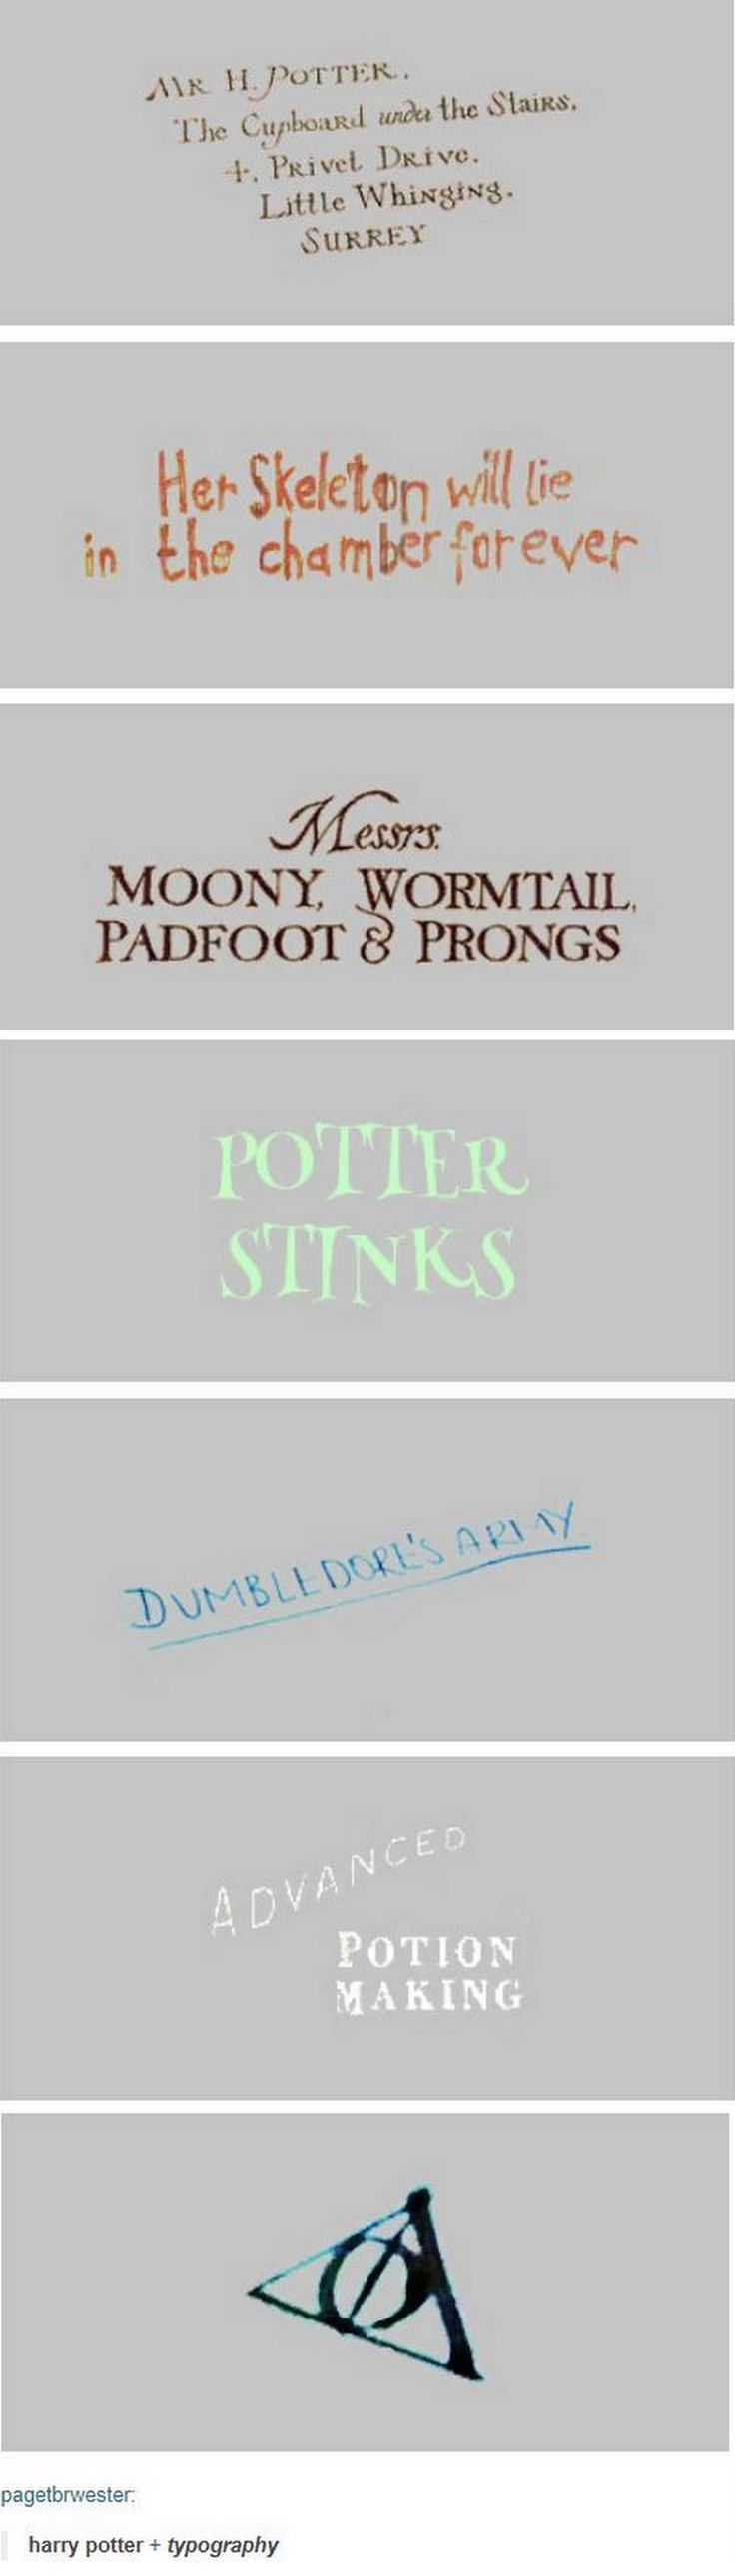 Harry Potter and typography